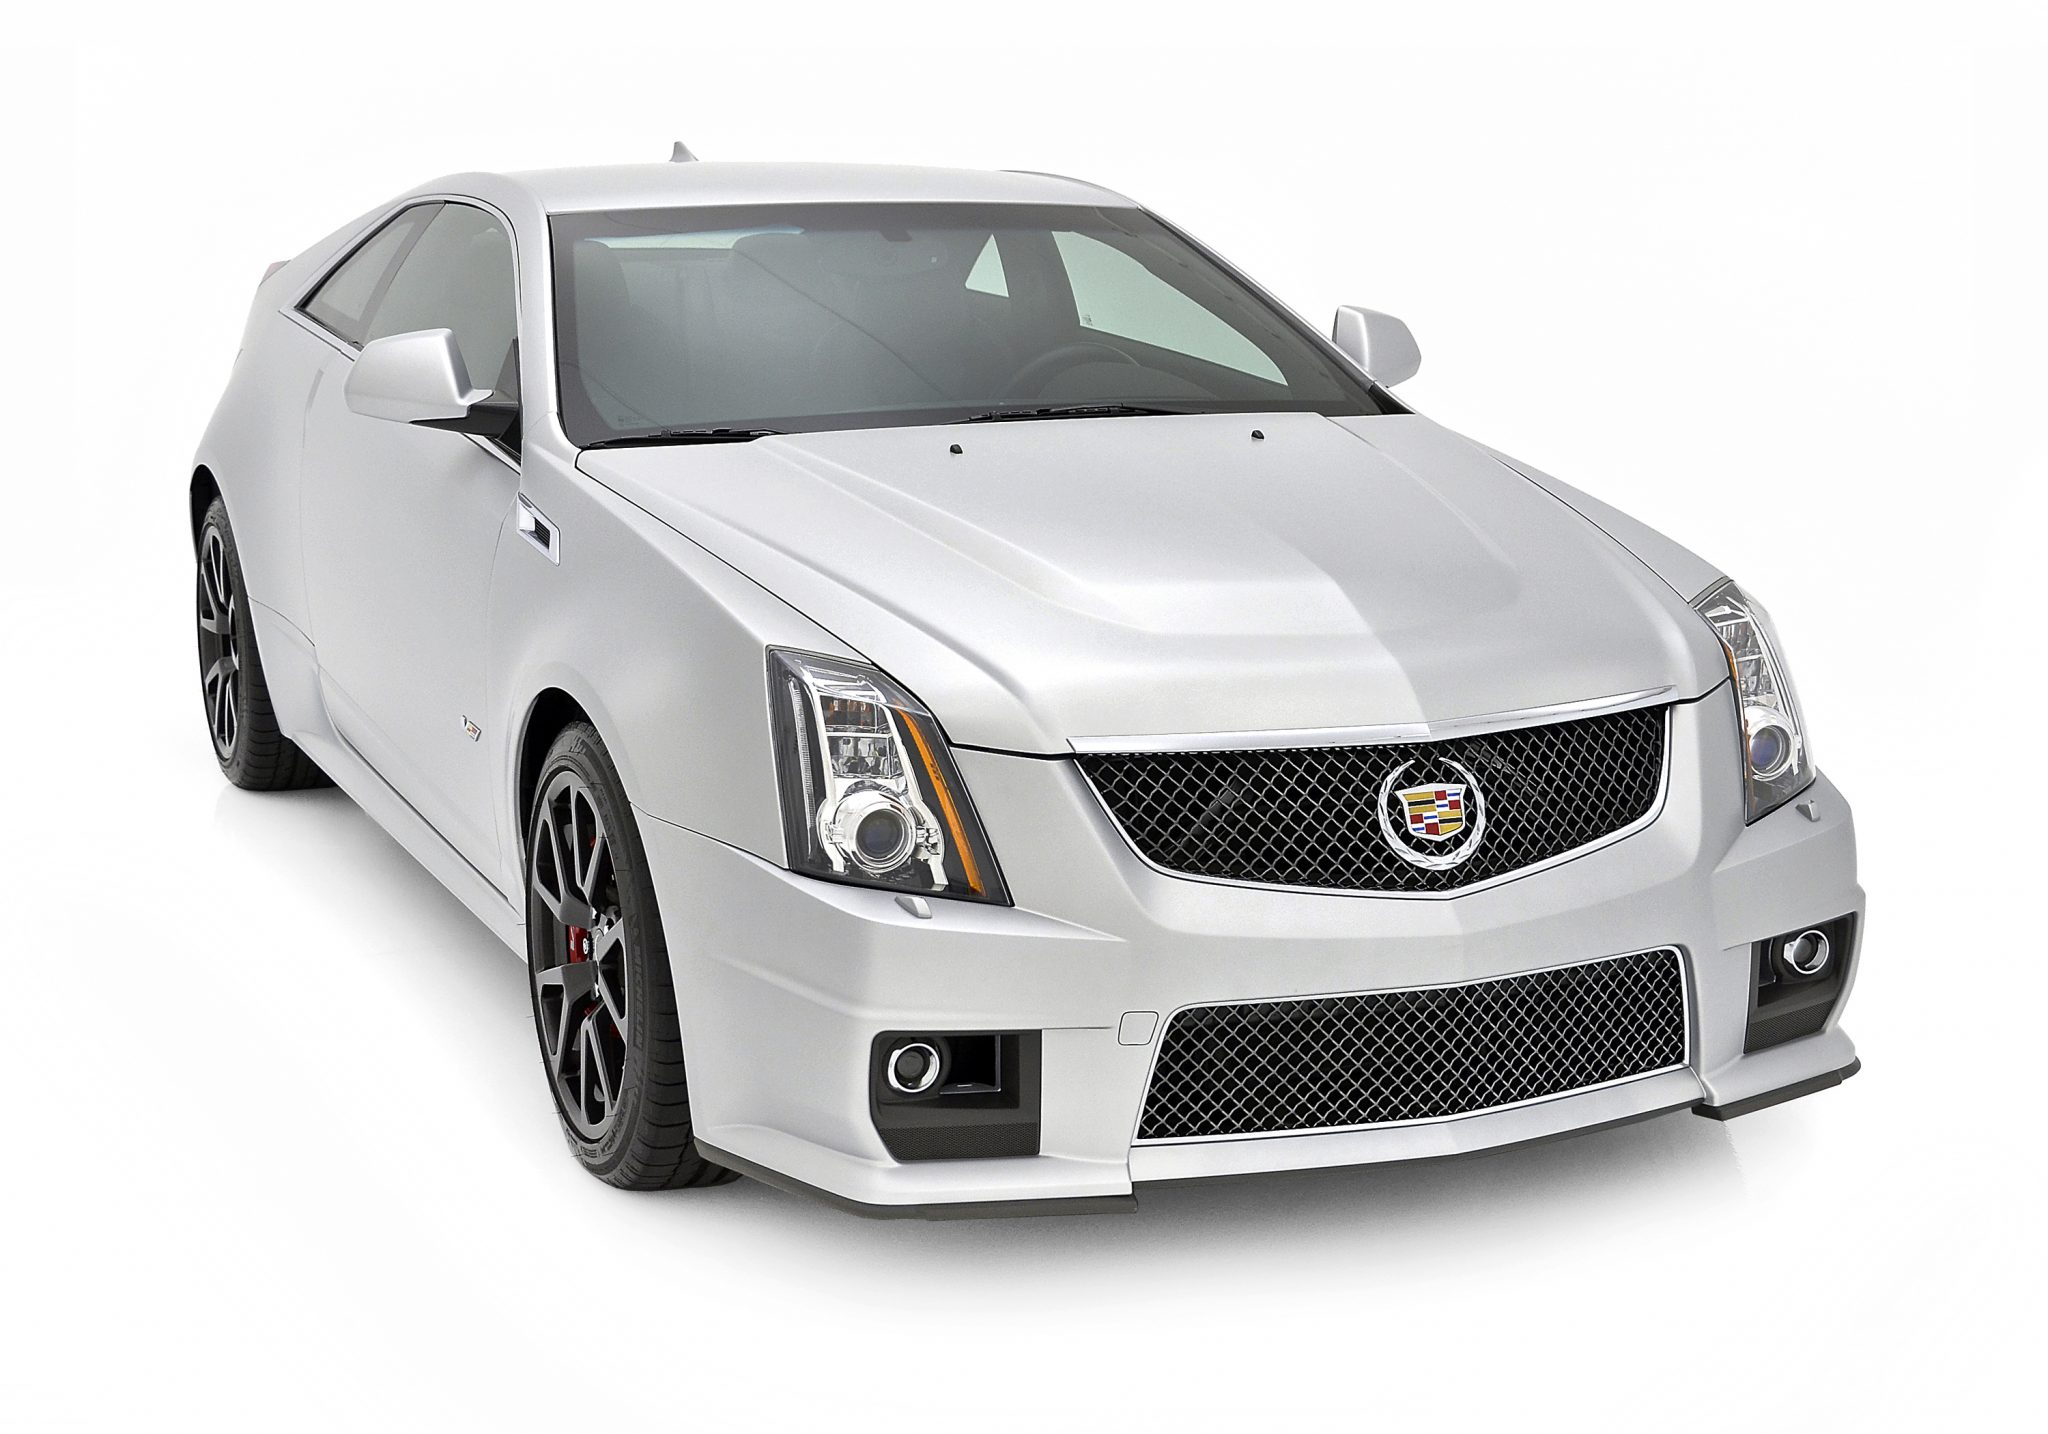 2013 Cadillac Cts Coupe >> 2013 Cadillac CTS-V Coupe Overview - The News Wheel